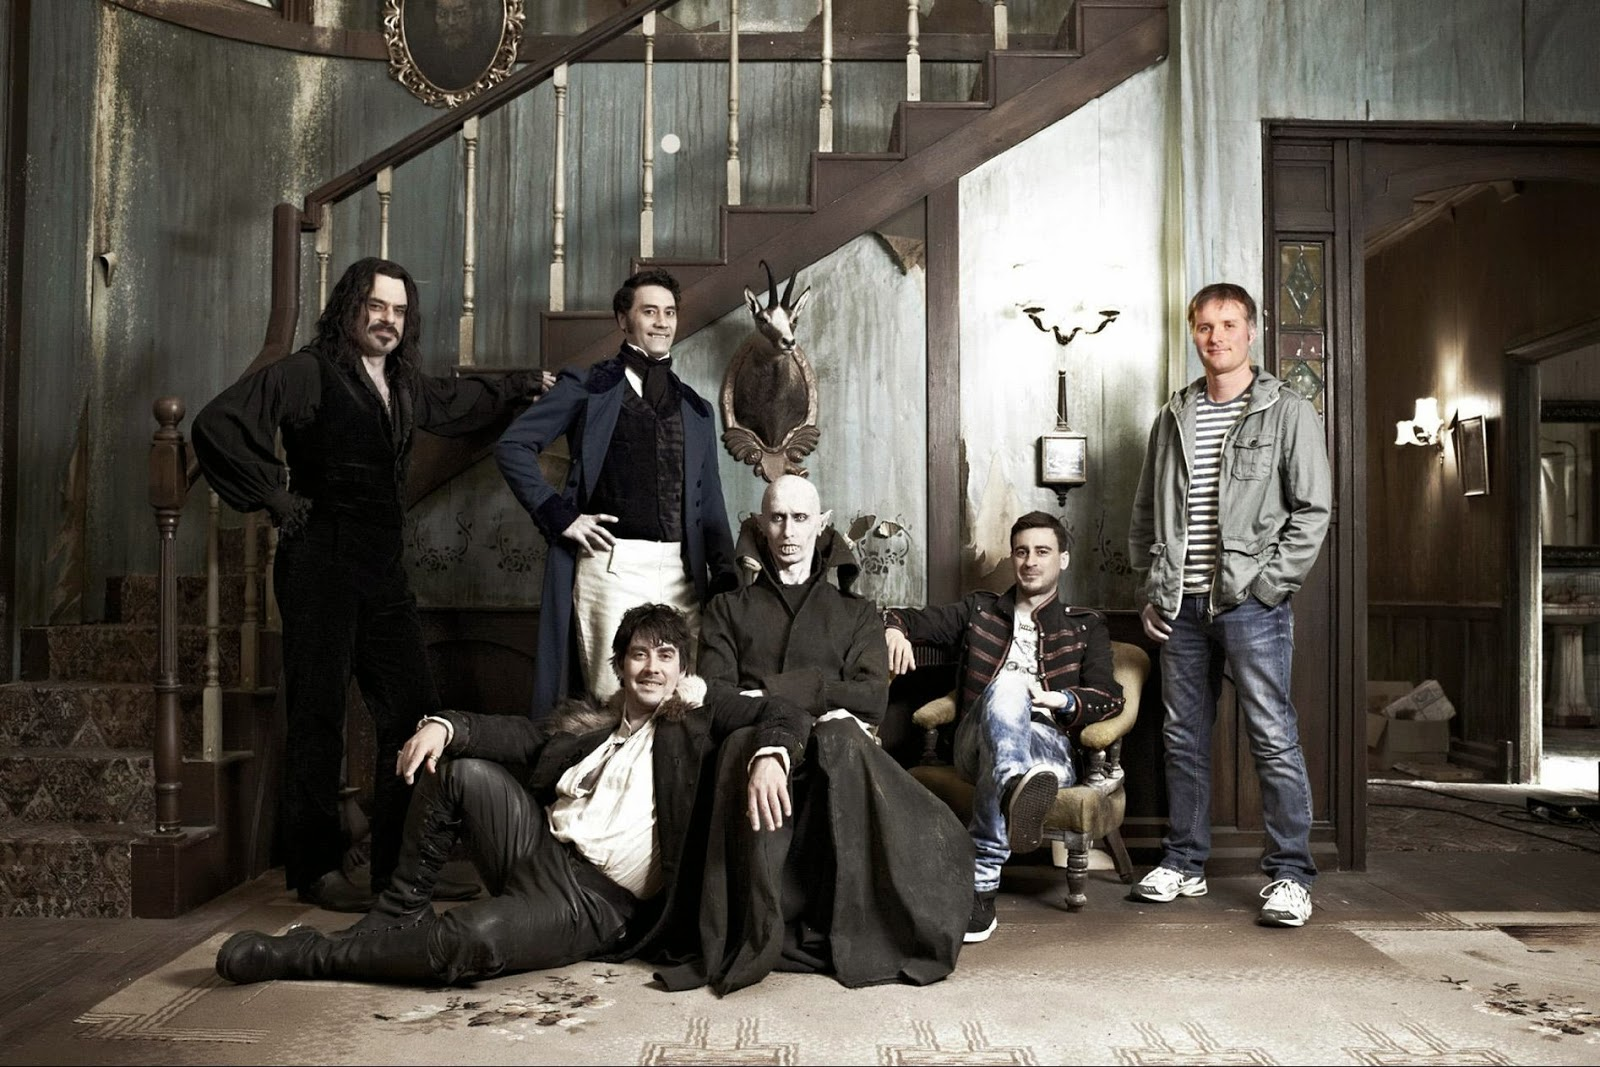 4 Zimmer Küche Sarg Trailer What We Do In The Shadows Film Kino Trailer